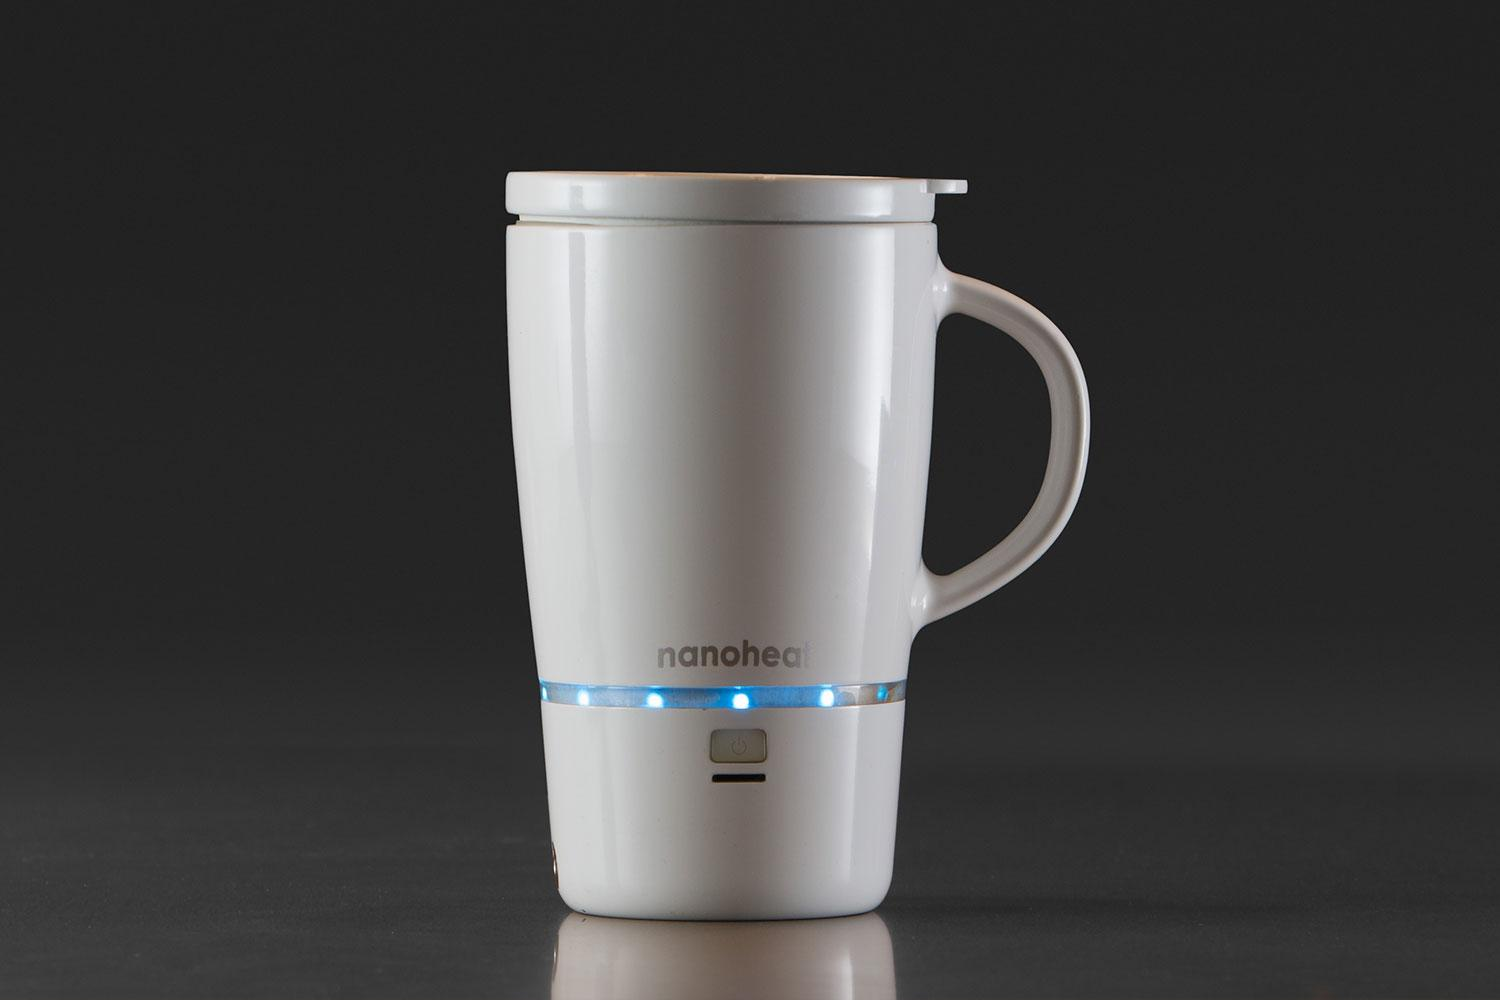 Goodbye Cold Brew This Mug Keeps Your Coffee At The